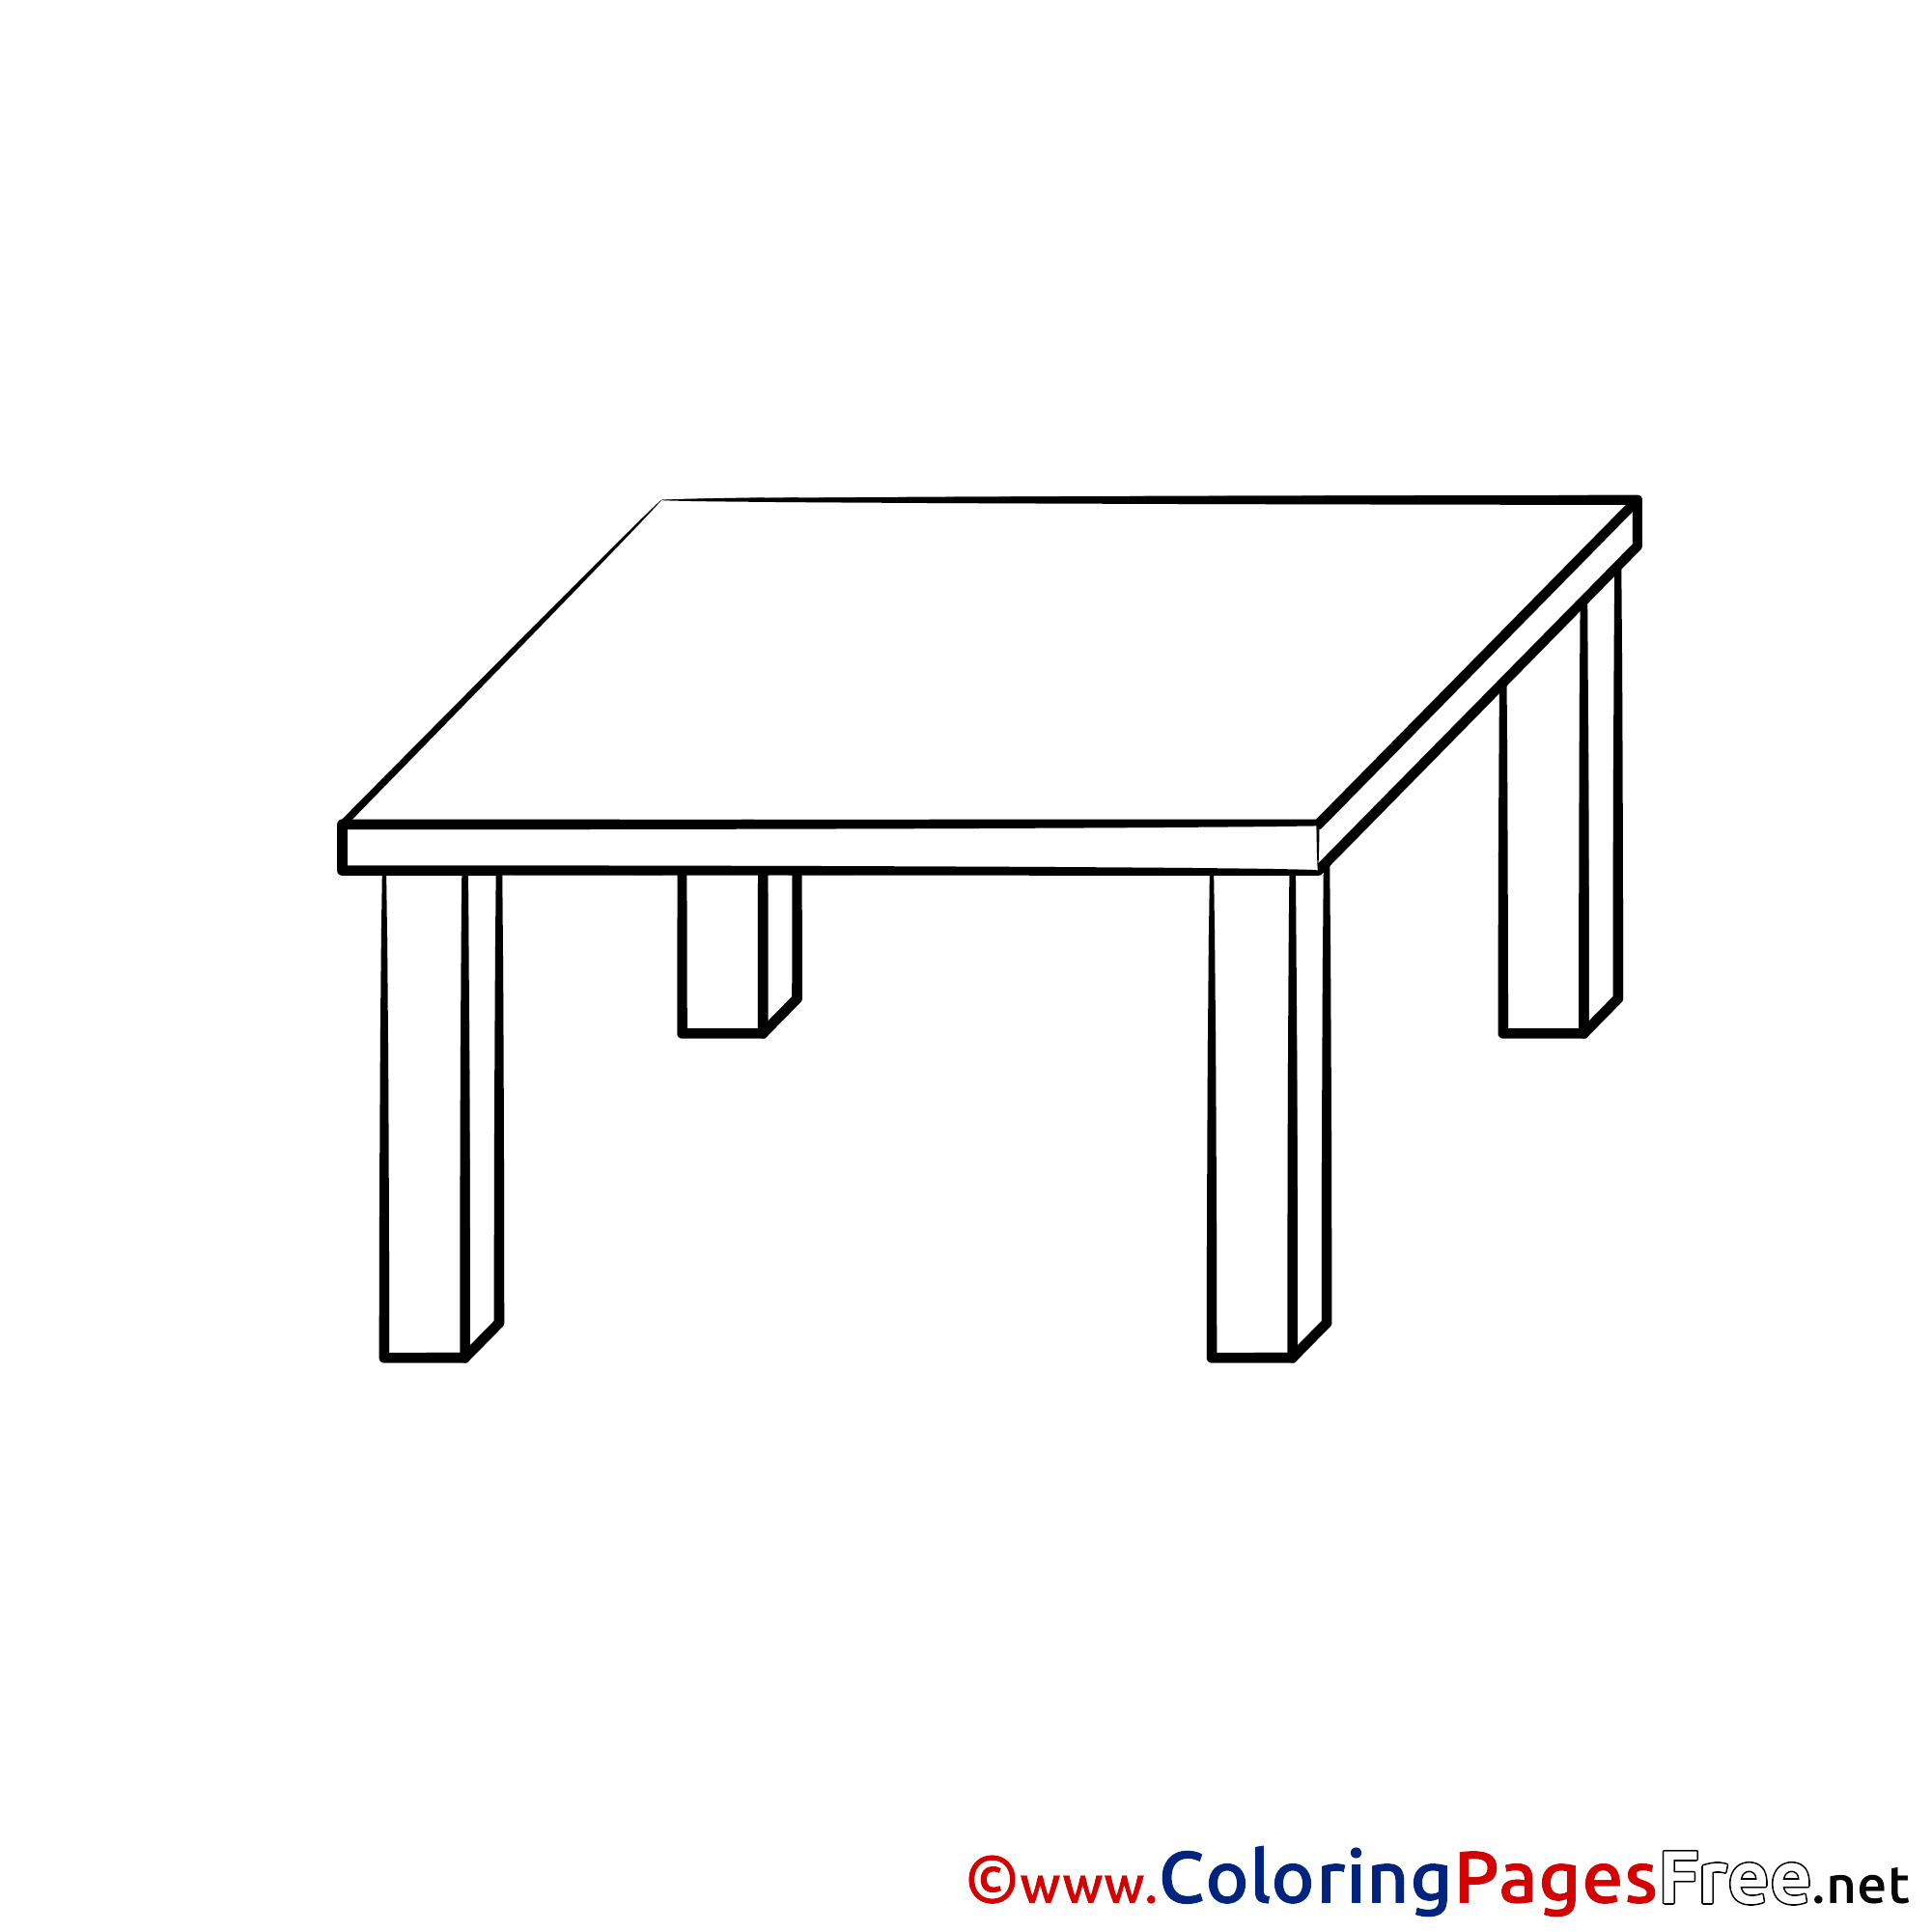 Table for free Coloring Pages download